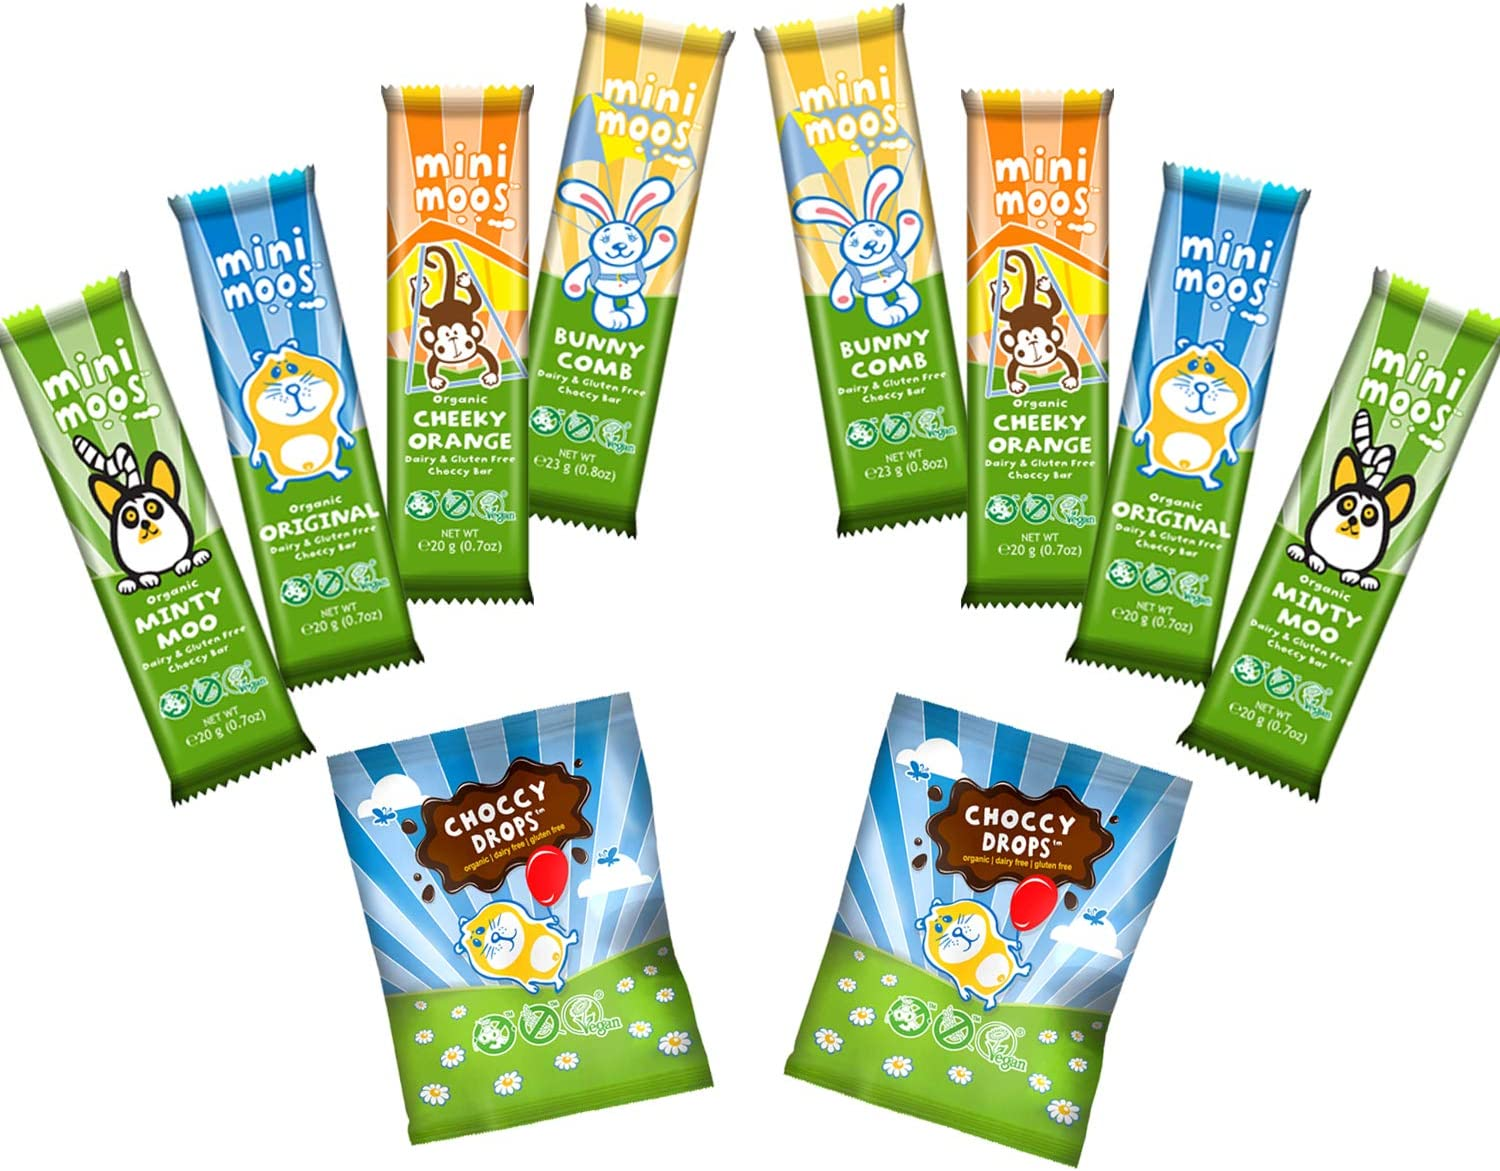 Moo Free Mini Moos Chocolate Mixed Pack-Mini